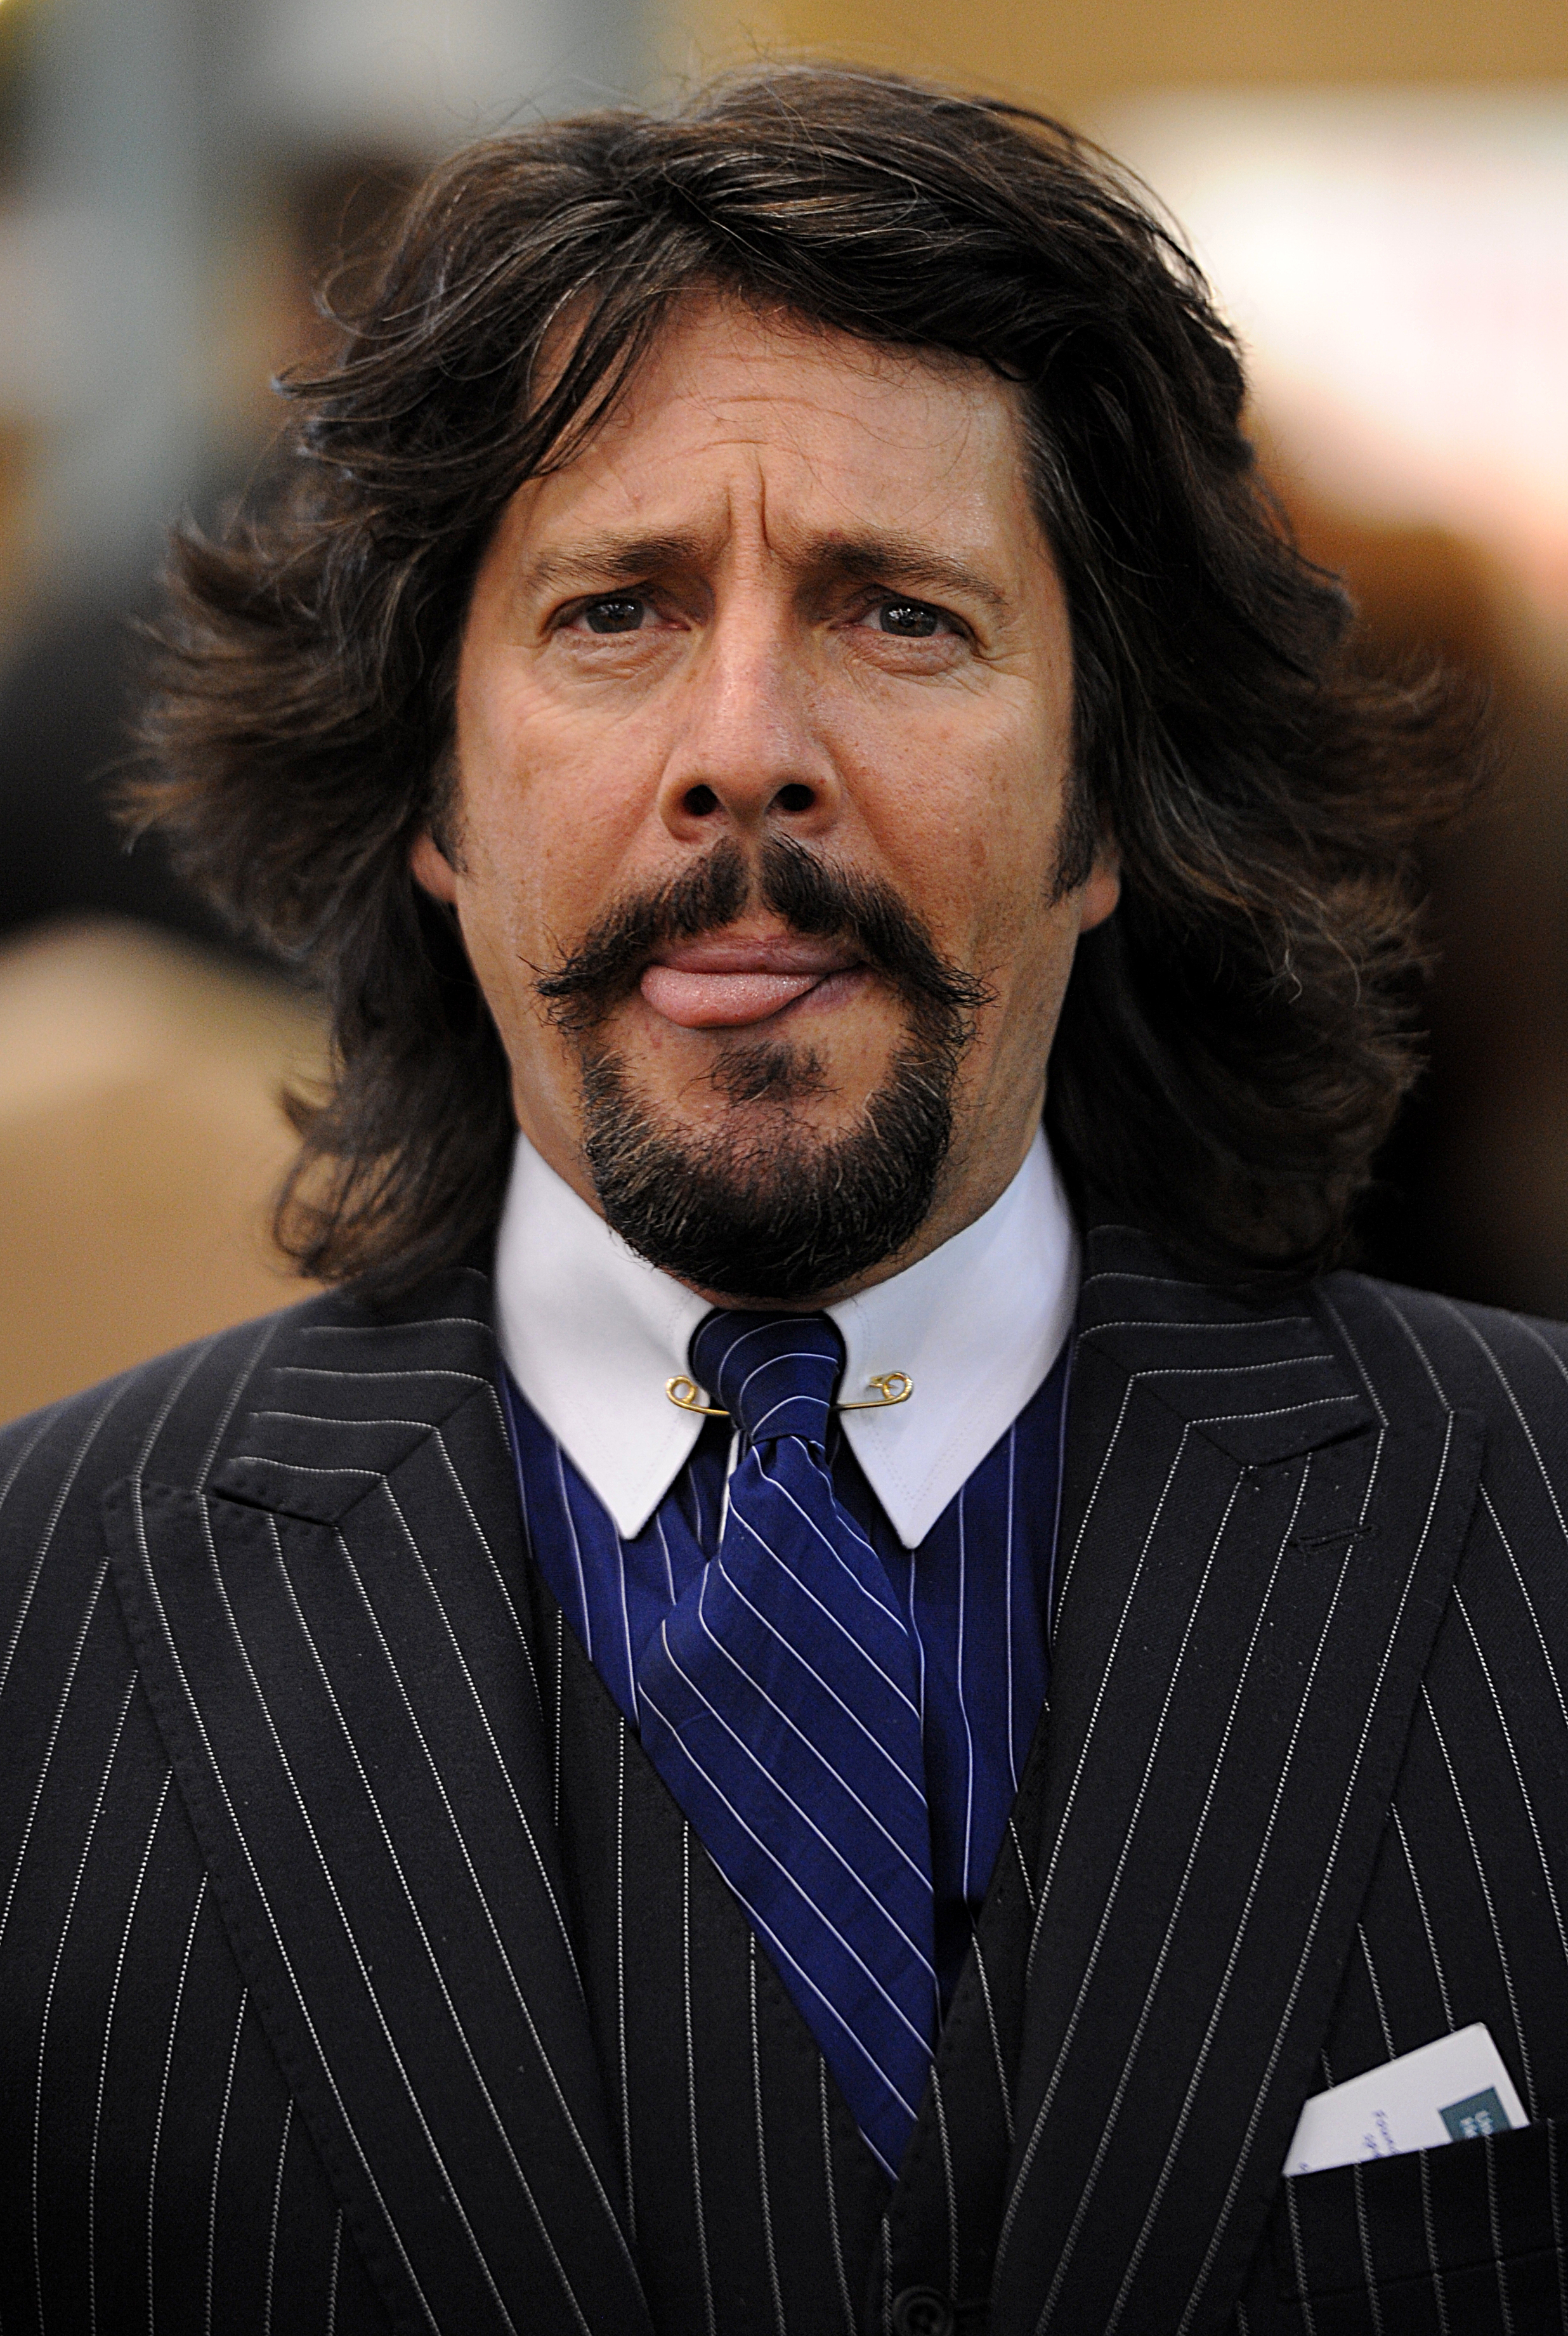 Grand Valley Auto >> Laurence Llewelyn-Bowen's Christmas park closes after awful reviews